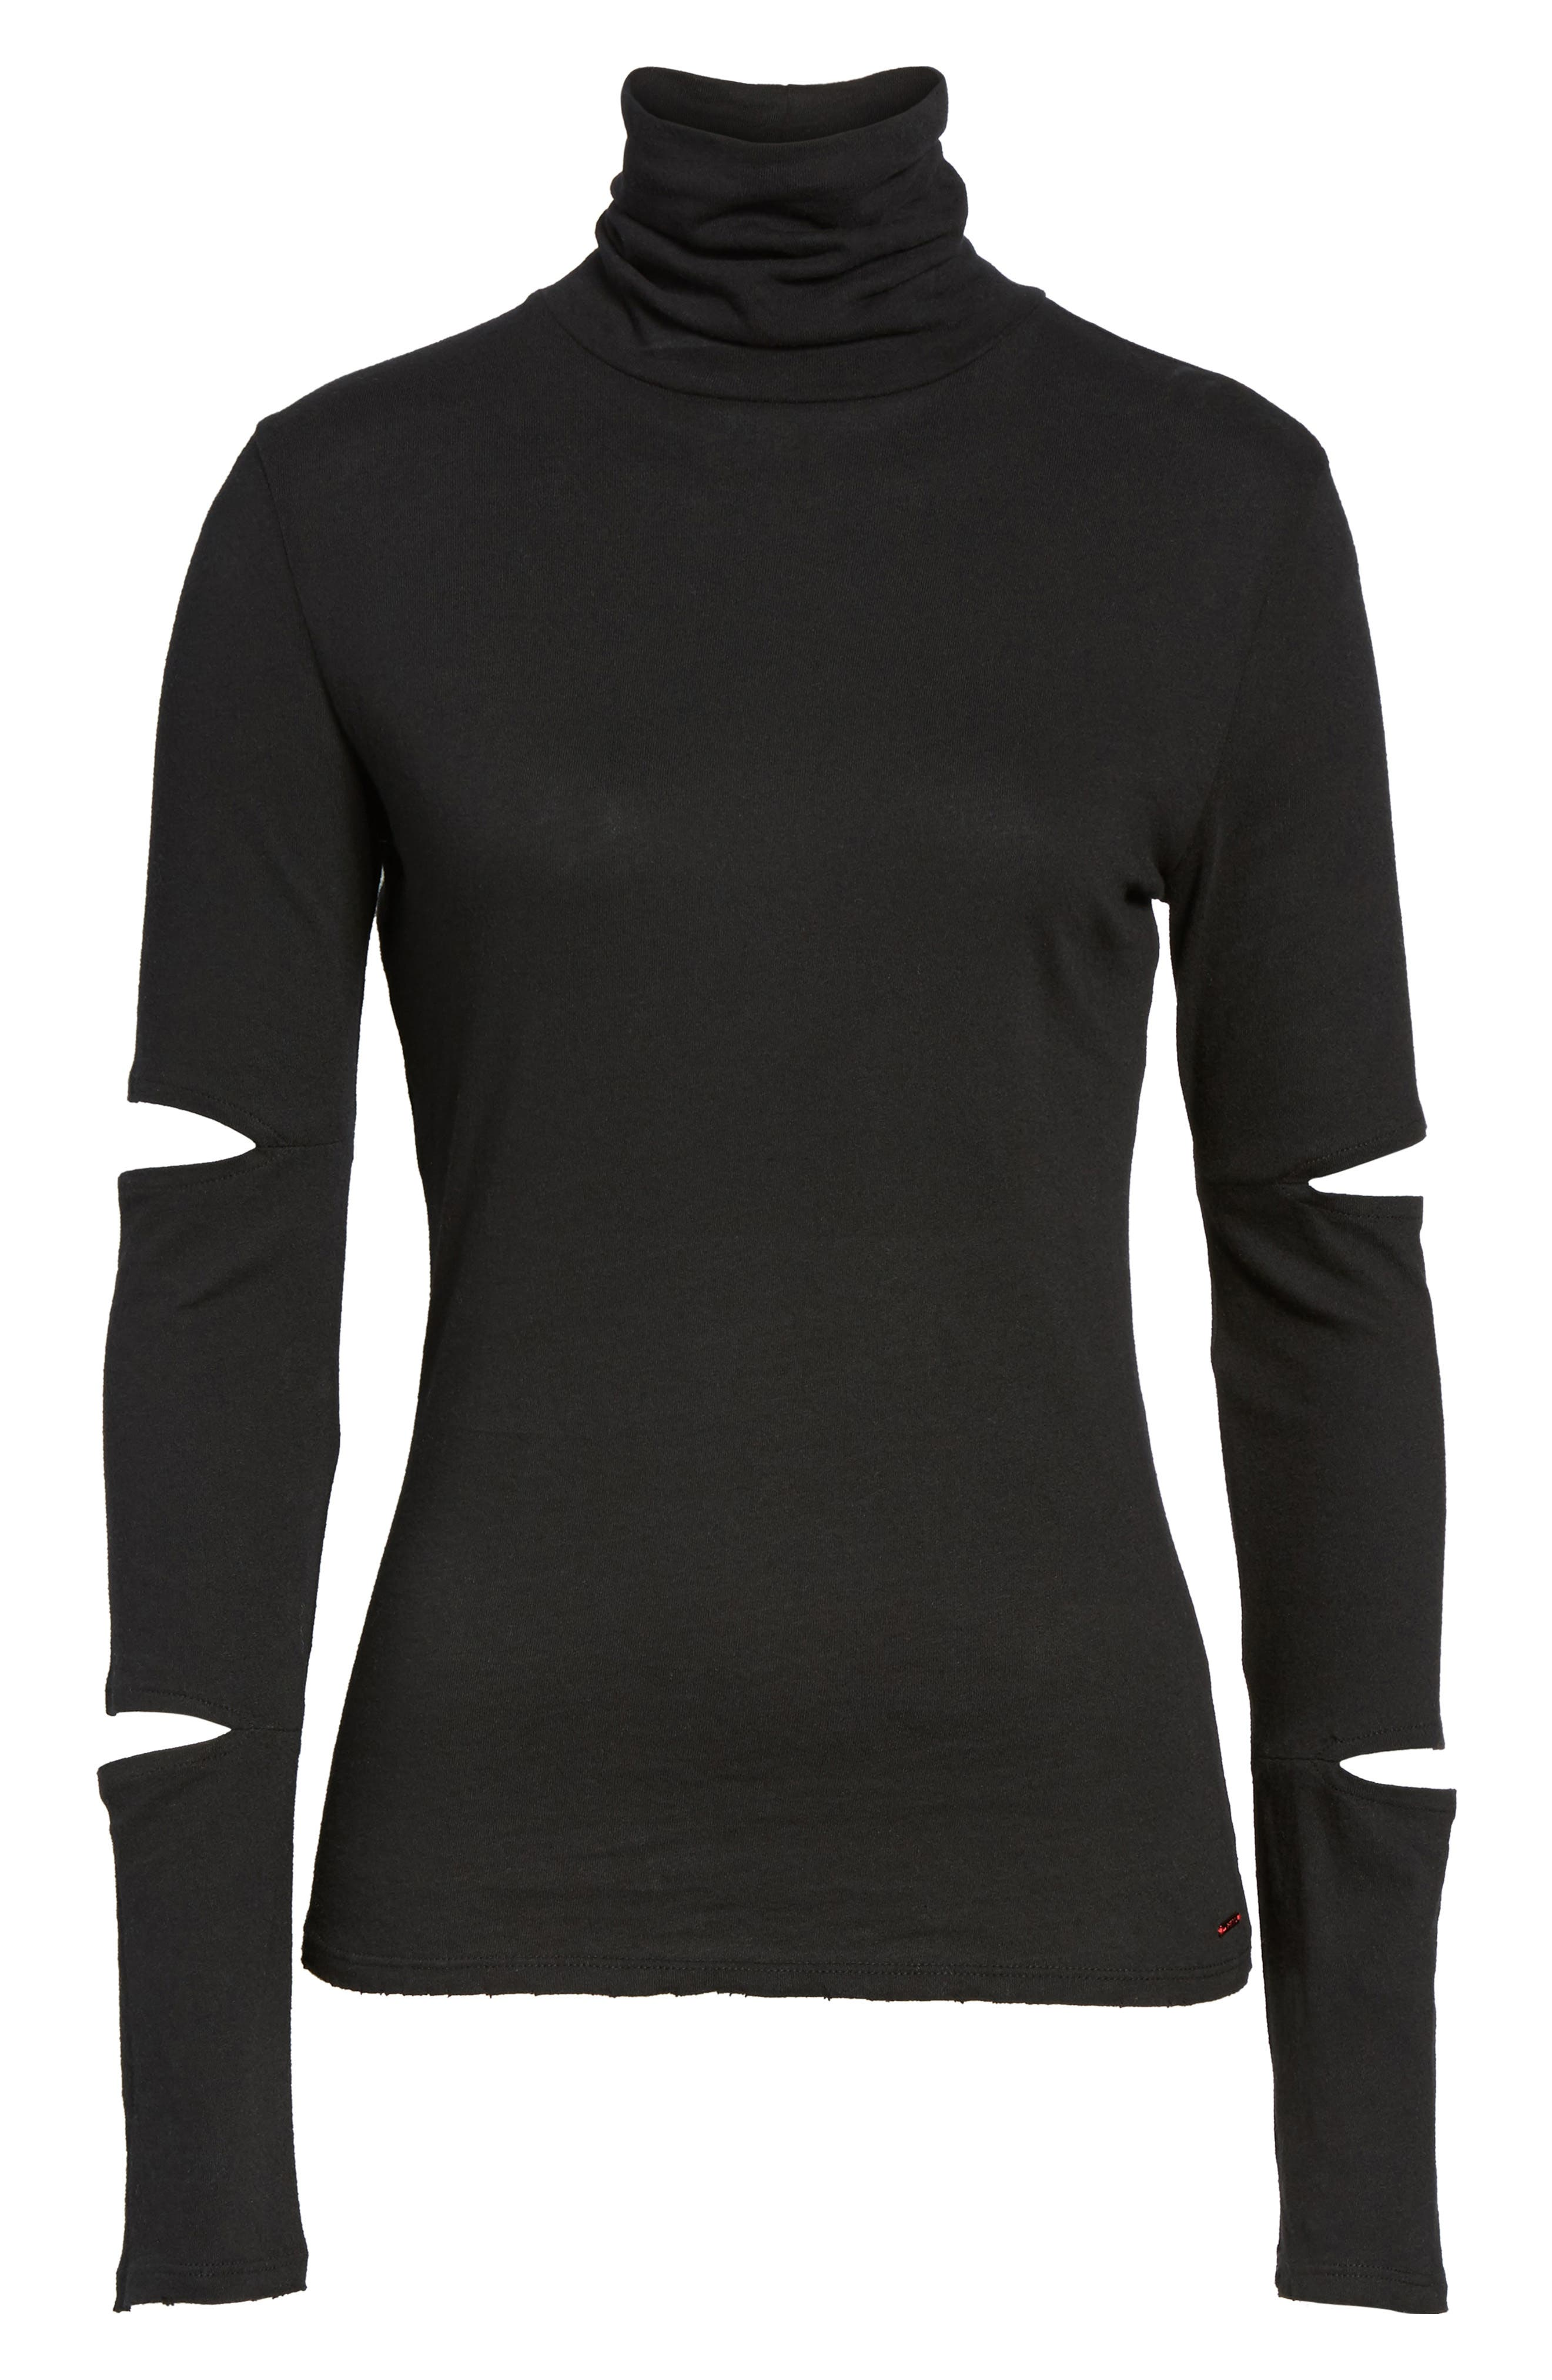 Easton Cutout Turtleneck,                             Alternate thumbnail 6, color,                             001